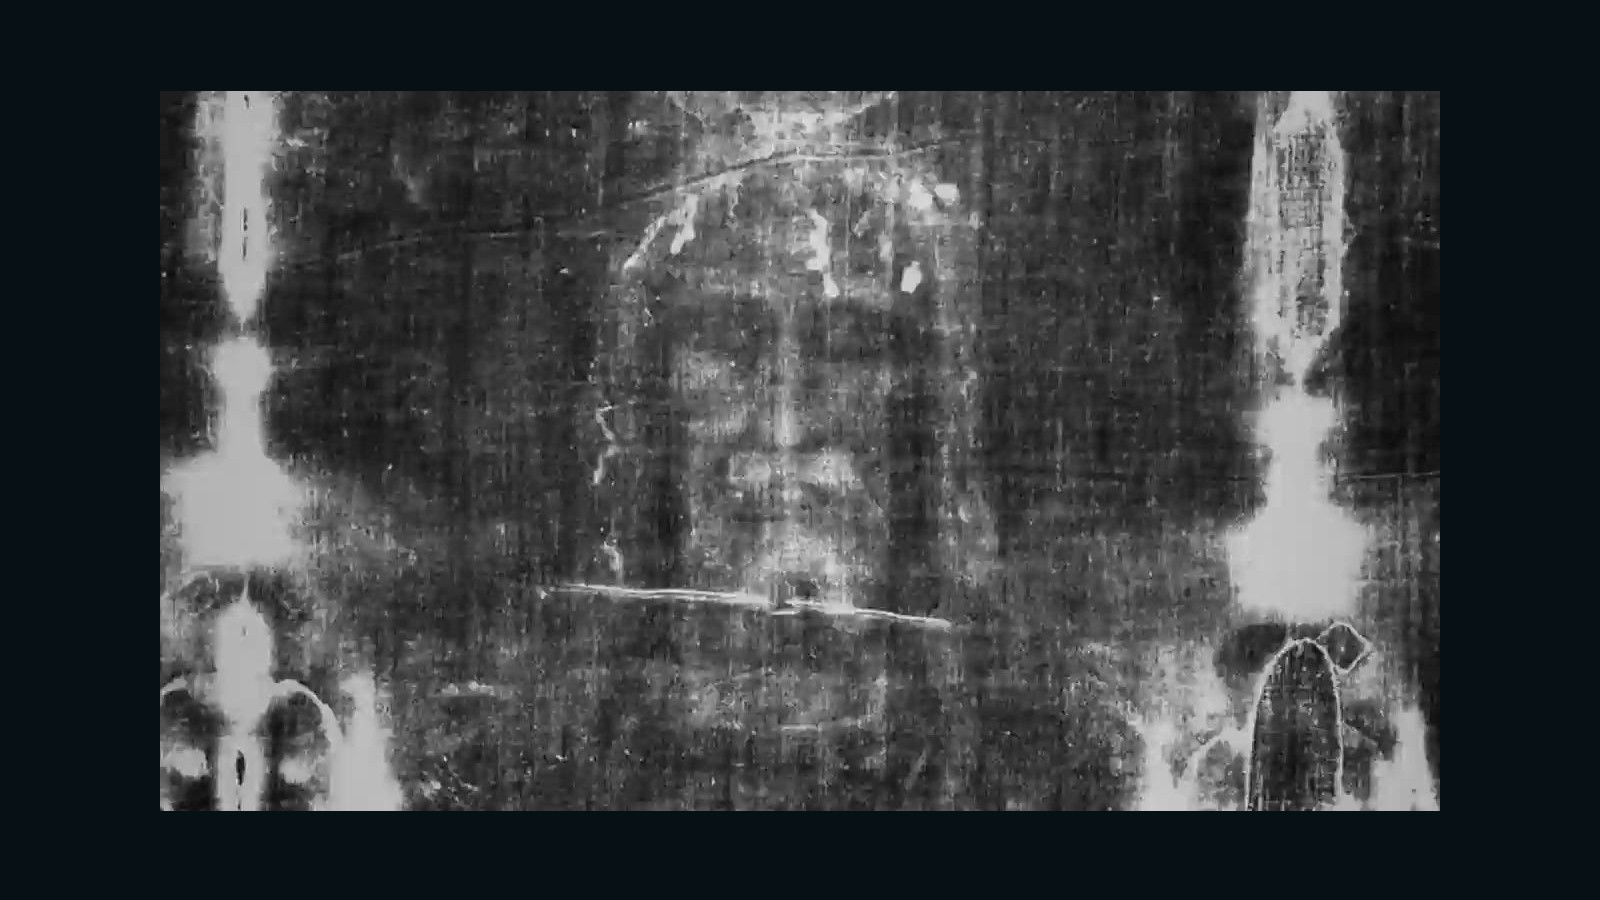 The Shroud of Turin's authenticity - CNN Video